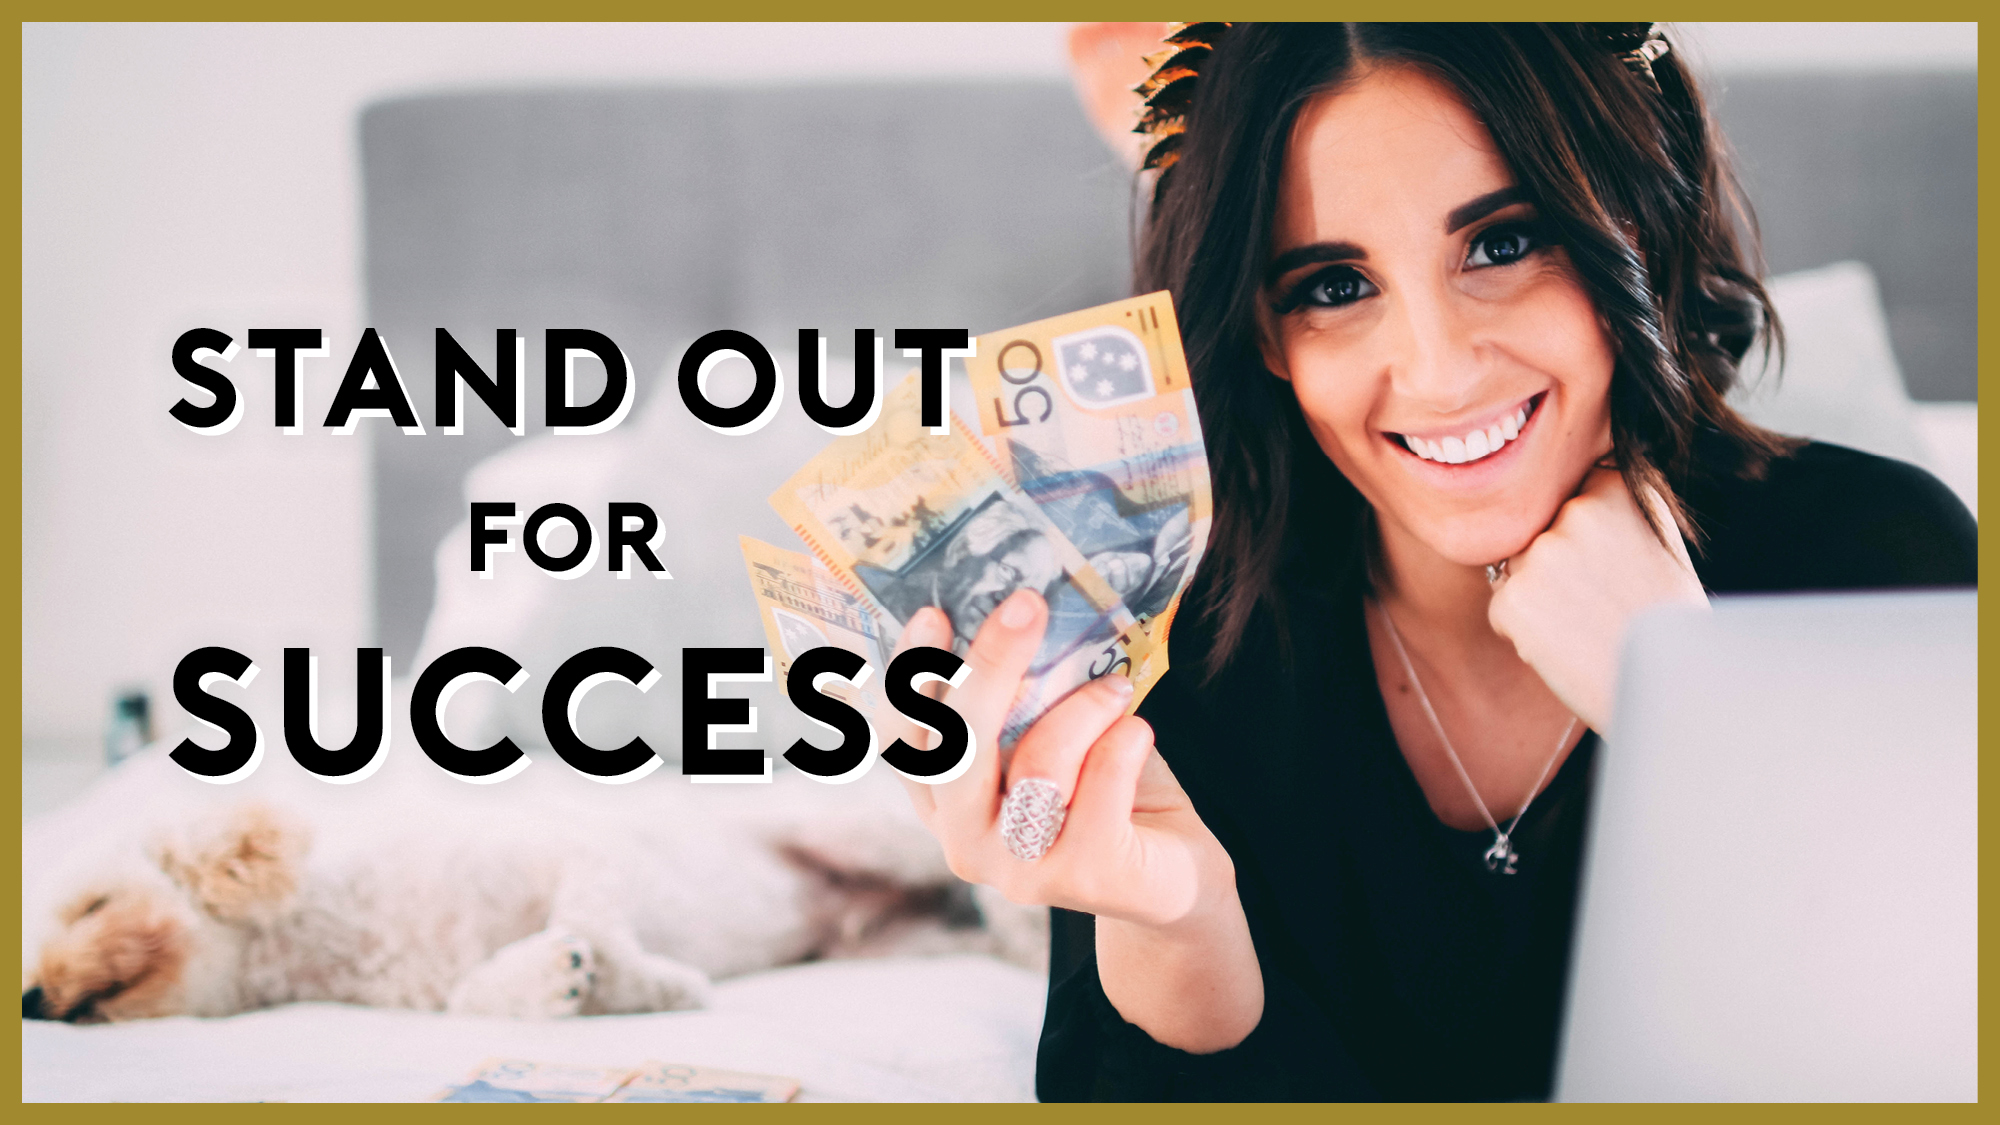 Stand out For Success - Stand out for Success is a Personal Branding Project designed to get help you take action on the specific areas of business and marketing that will help you stand out and get noticed by your audience, potential clients, network and industry.